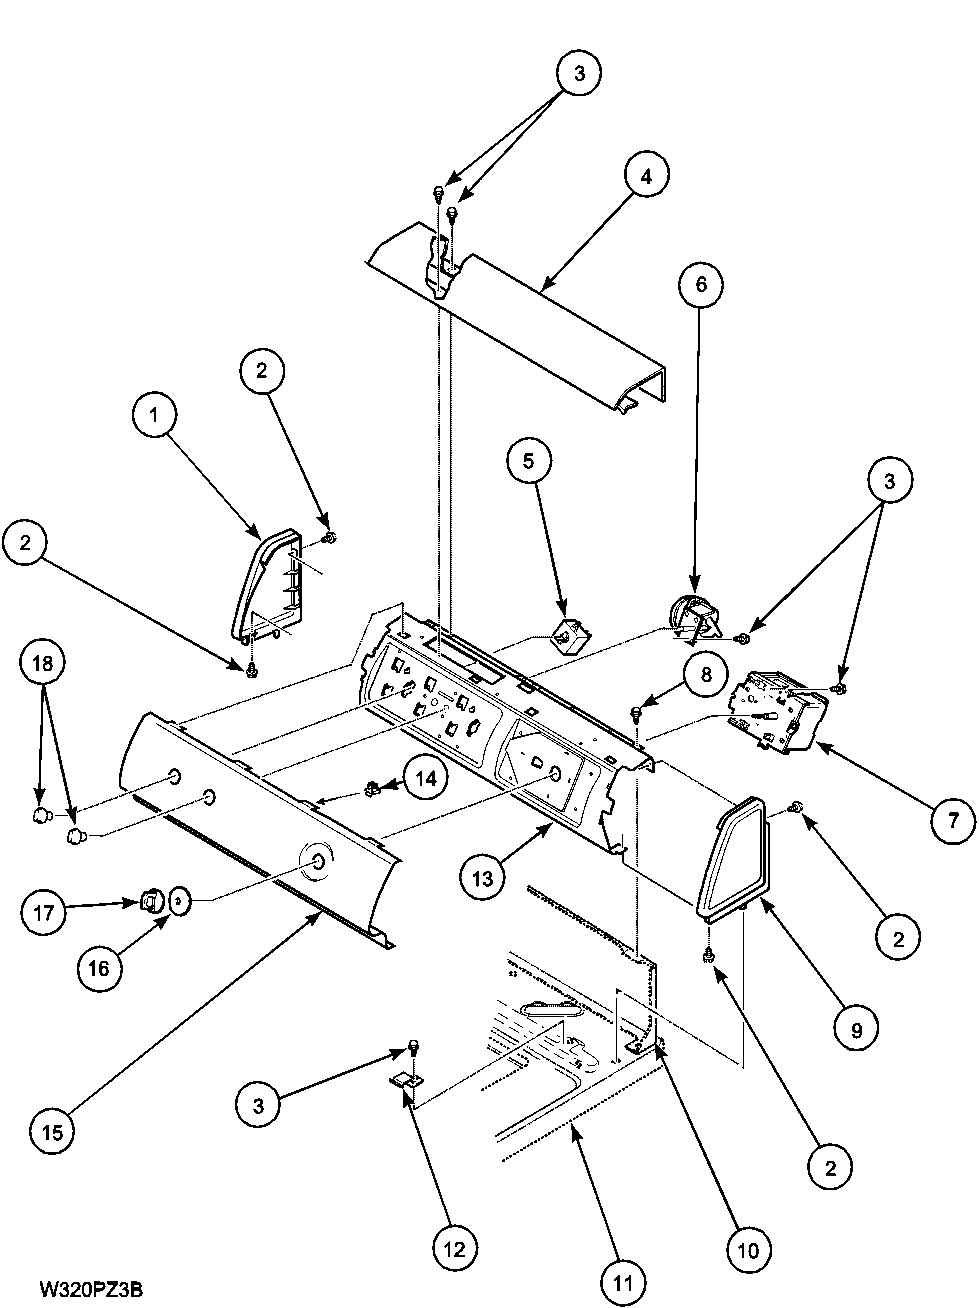 Lwa40aw2 top loading washer control panel parts diagram